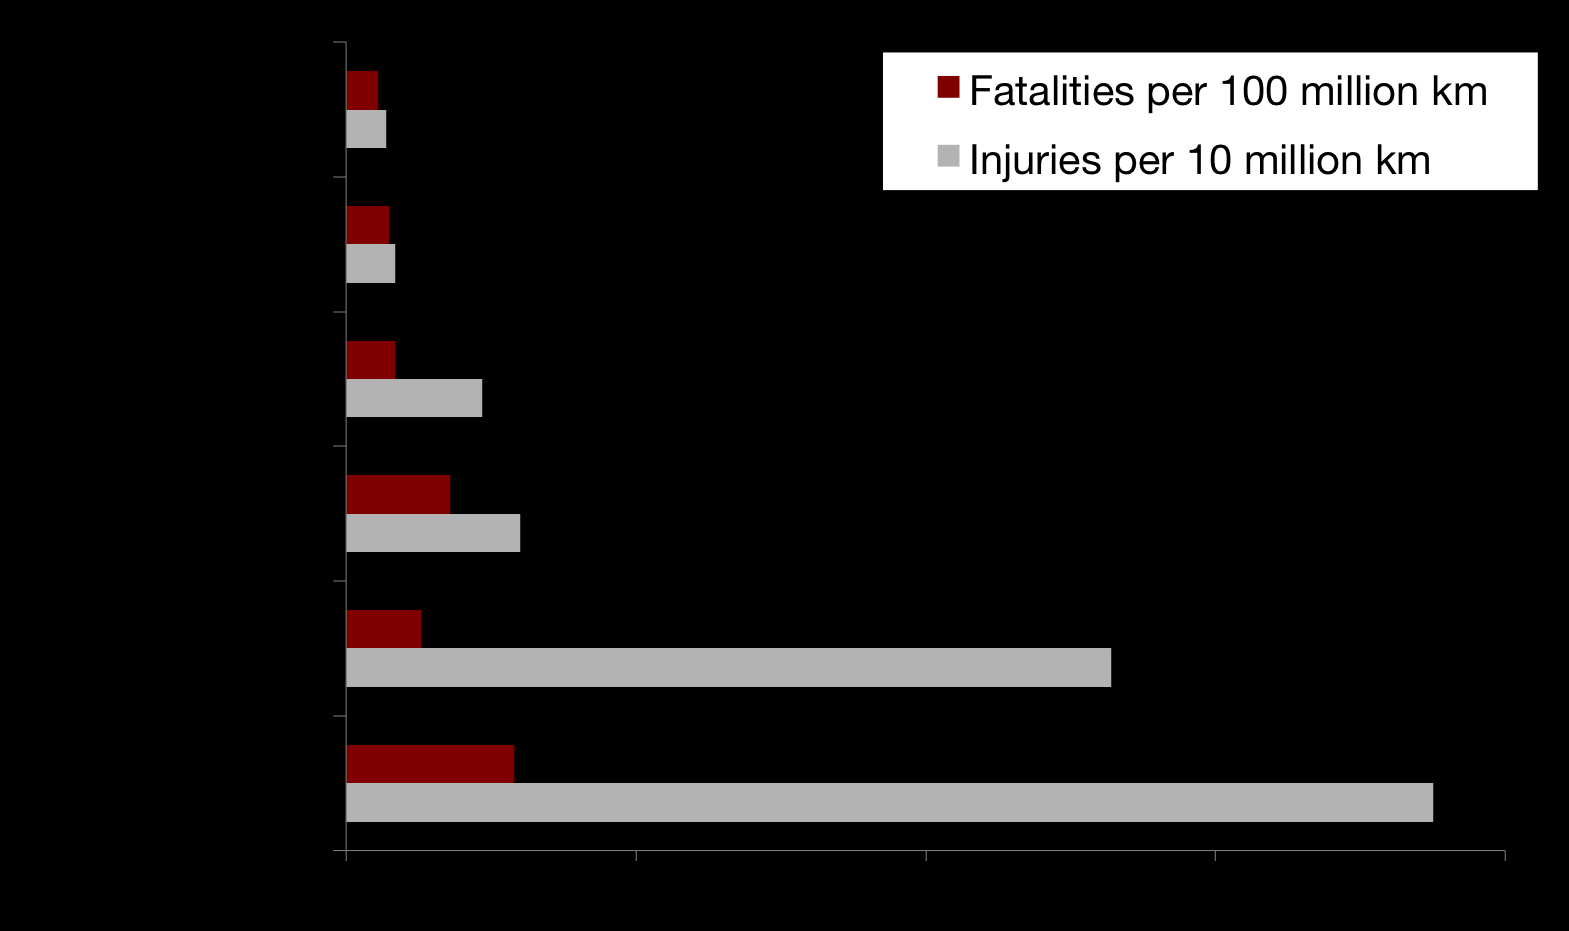 differences in cycling injury rates - Europe & NA [data sources: International - Pucher & Buehler Transport